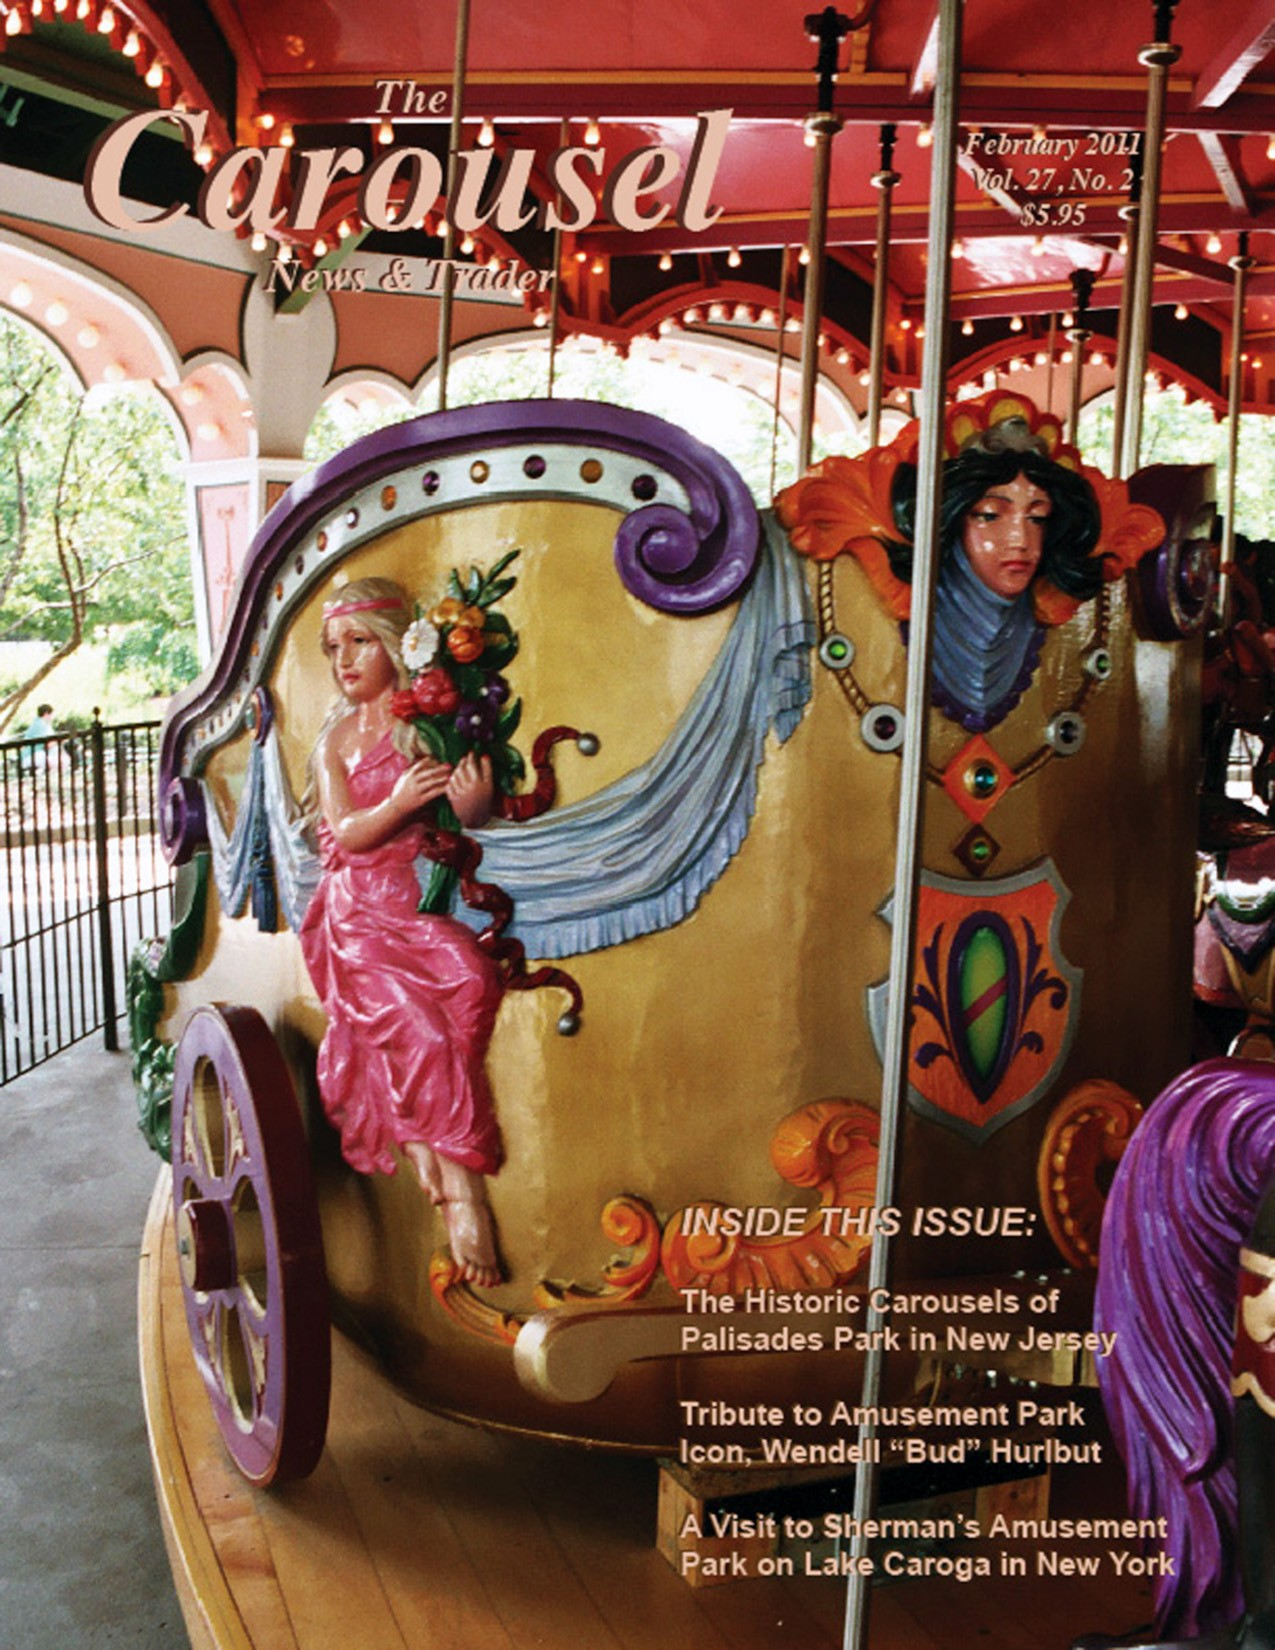 Carousel-news-cover-2-Historic-PTC-84-carousel-February-2011